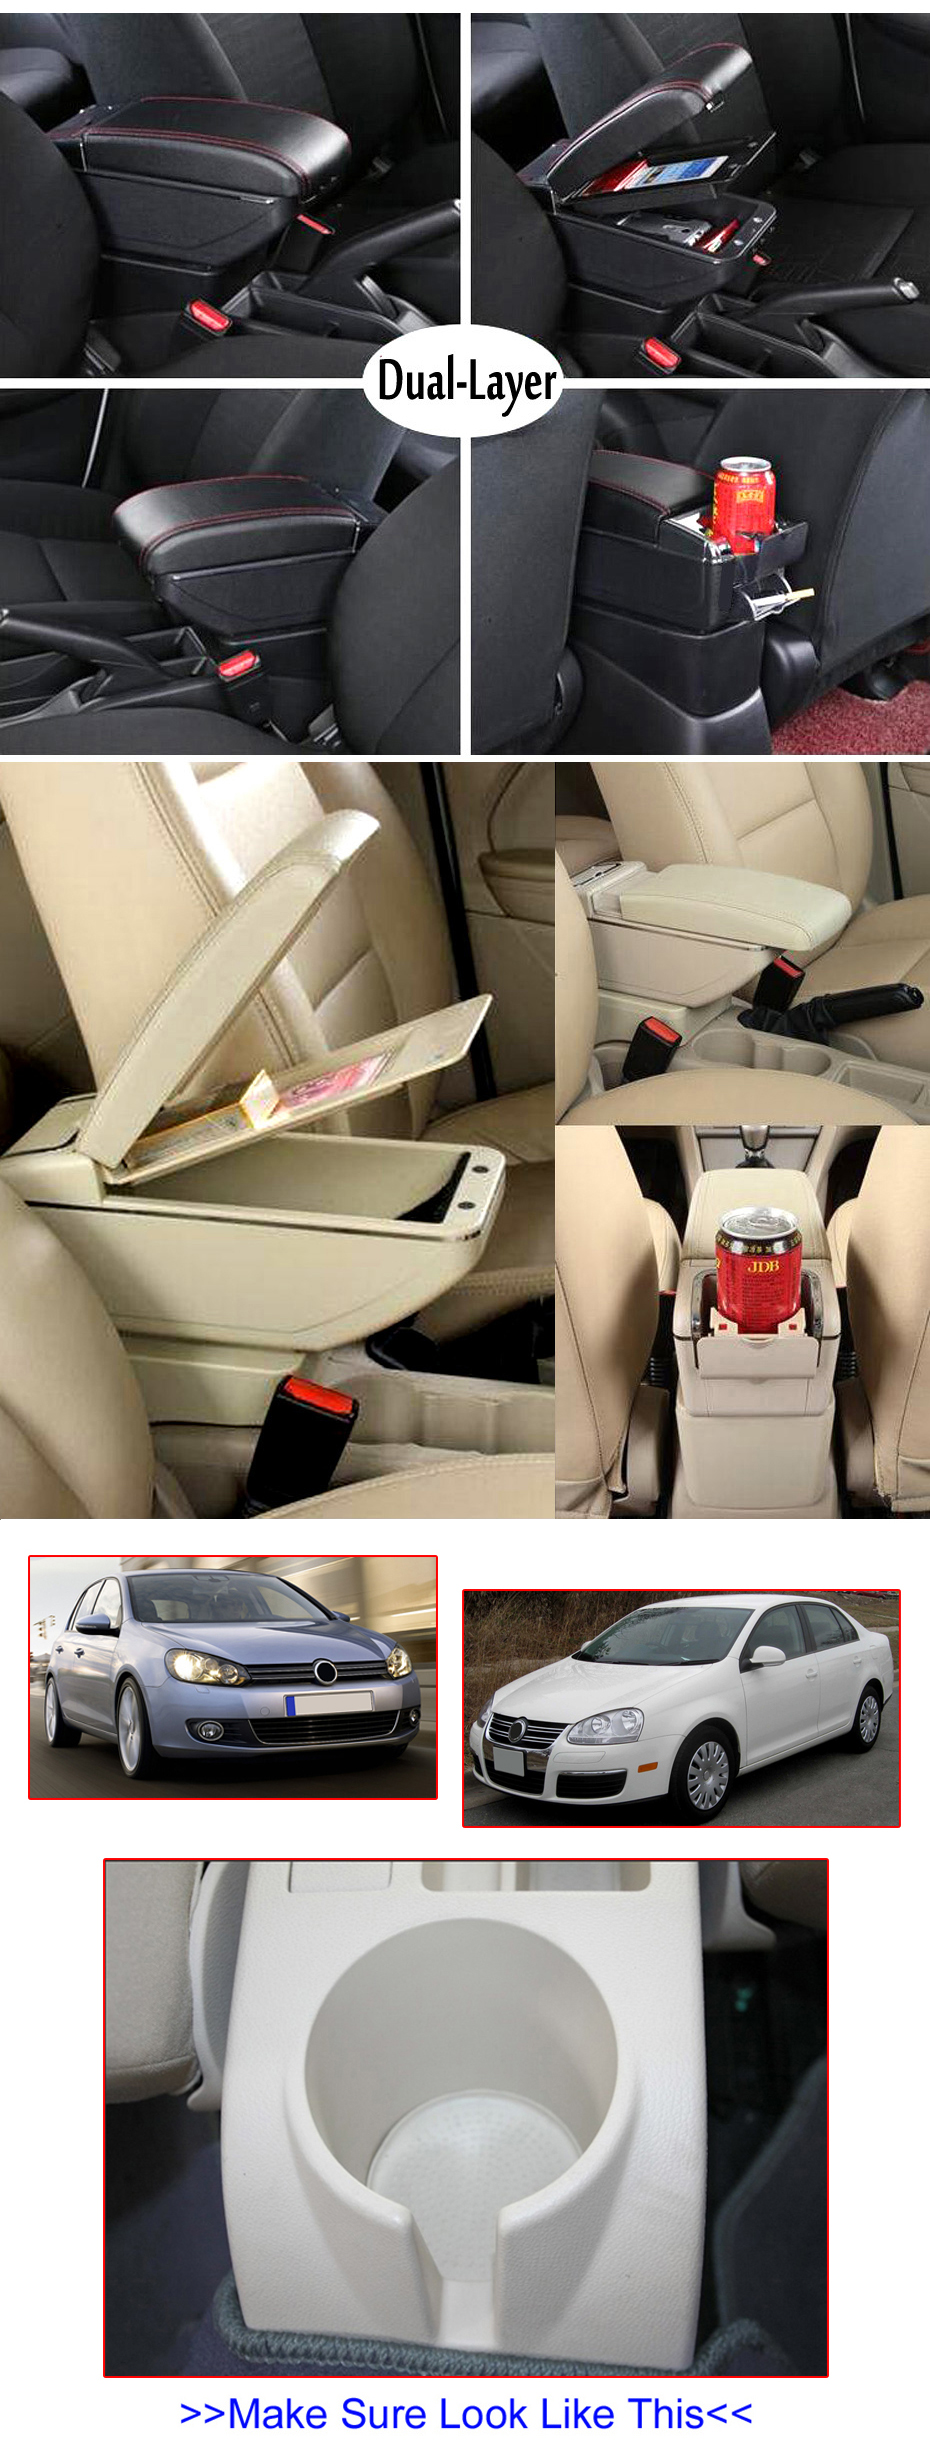 HTB1chACj6ihSKJjy0Feq6zJtpXa4 Cool Review About Vw Jetta 2.5 with Inspiring Images Cars Review